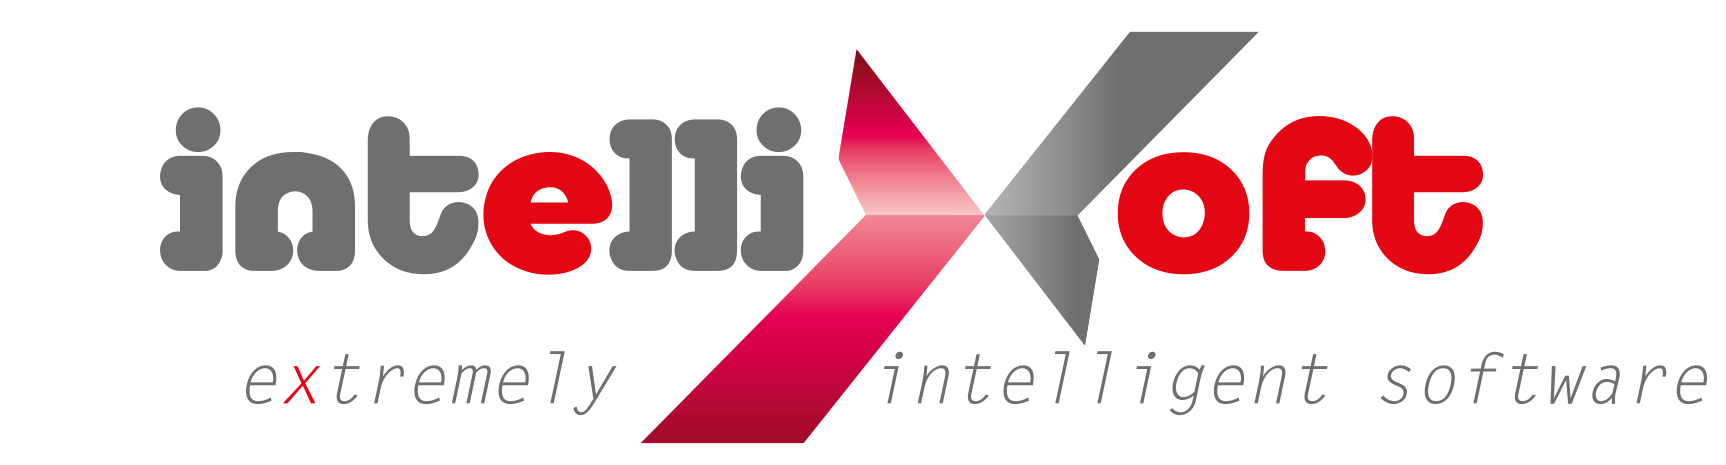 intellixoft